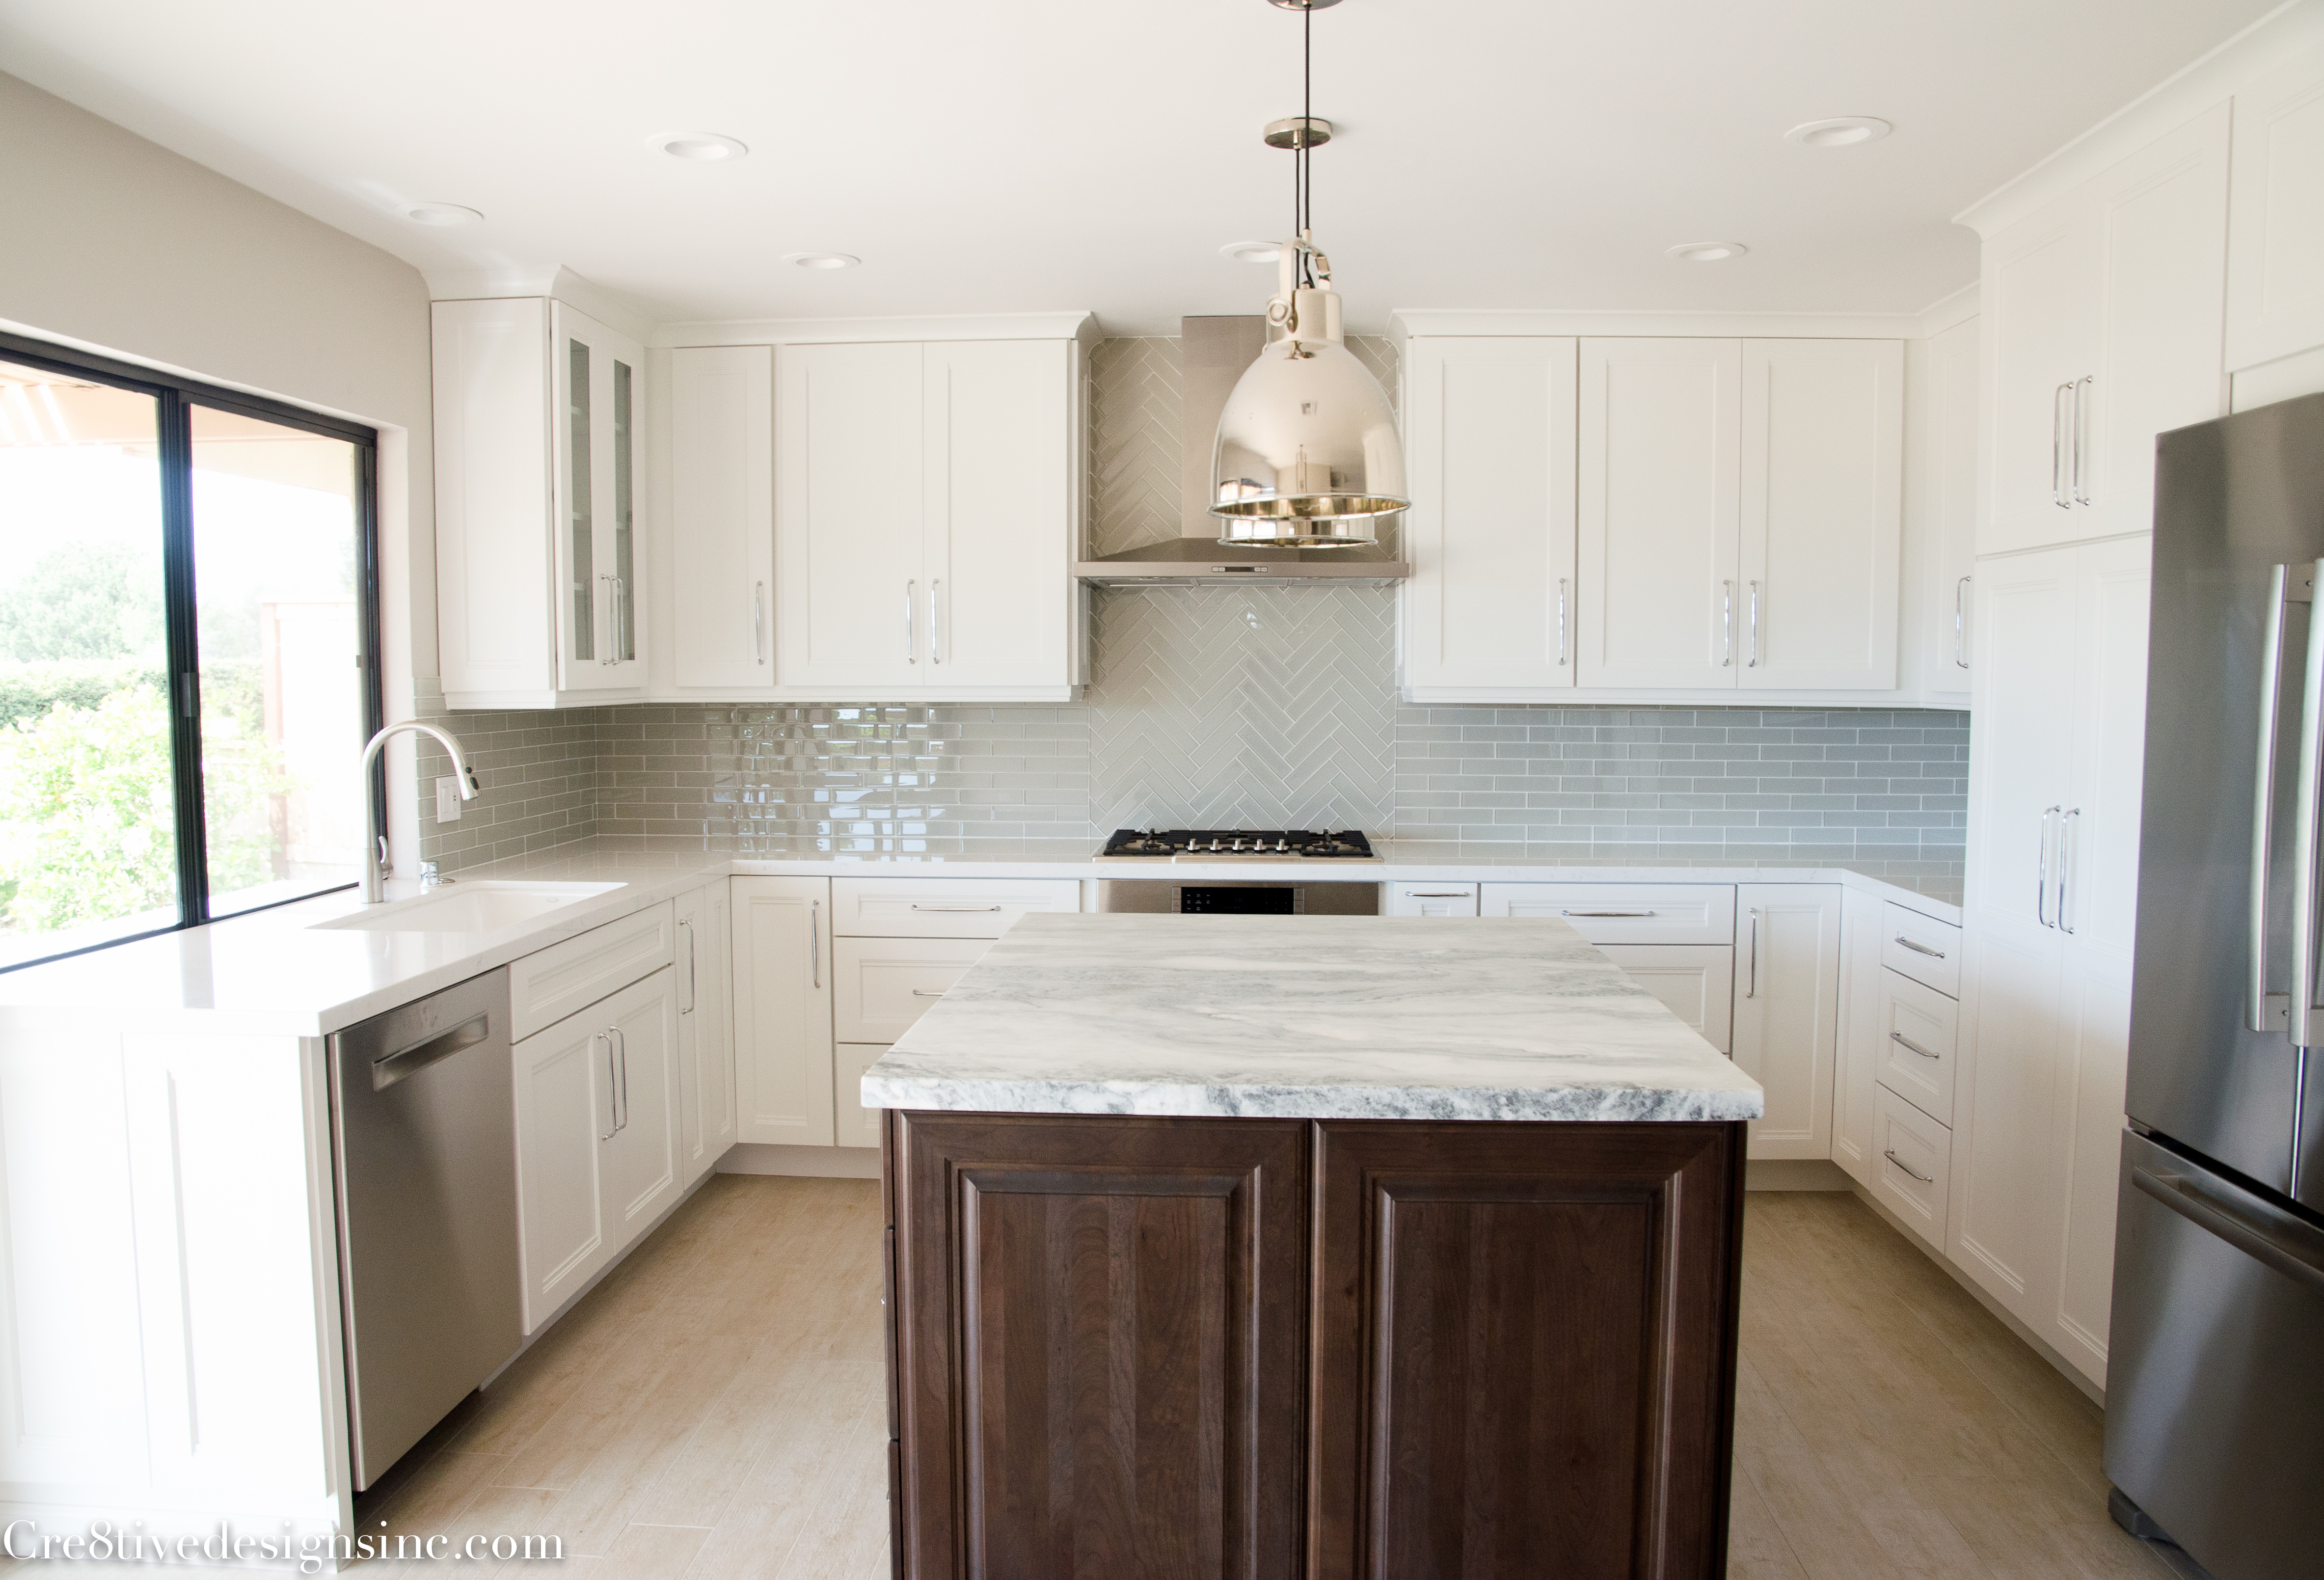 kitchen remodel quartz countertops honed marble island kitchen remodeling kitchen design kansas cityremodeling kansas city